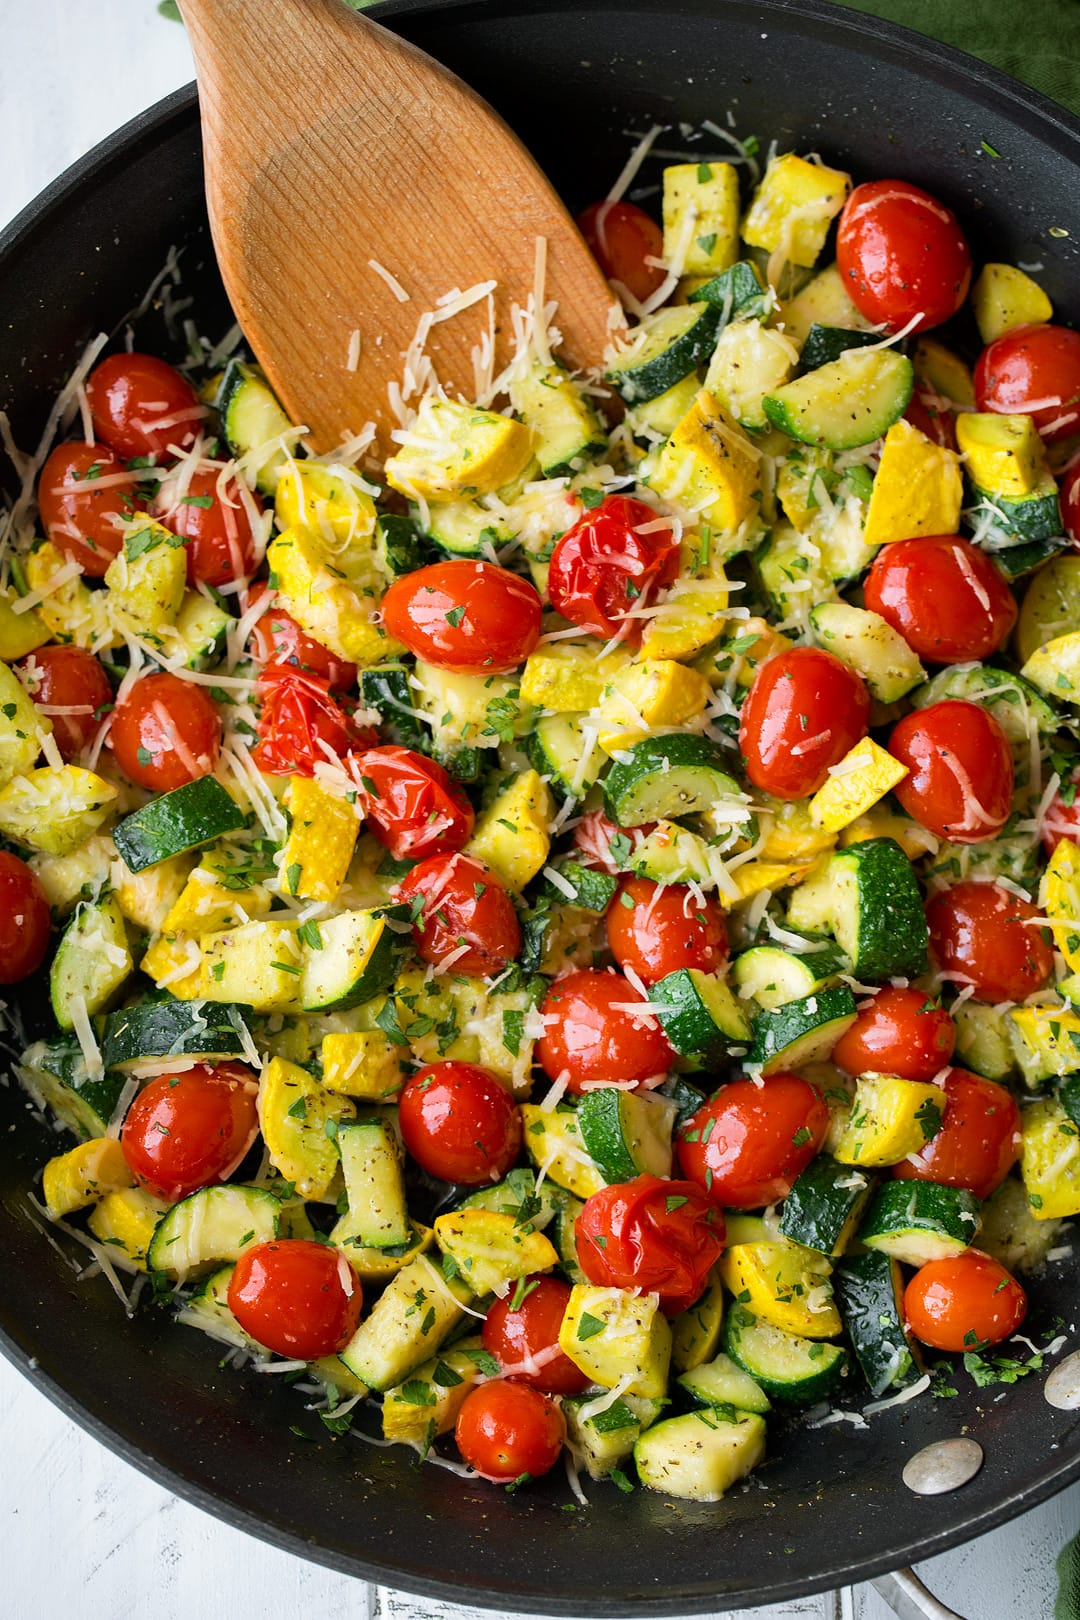 Overhead image of sauteed zucchini, squash and tomatoes in a large dark skillet.